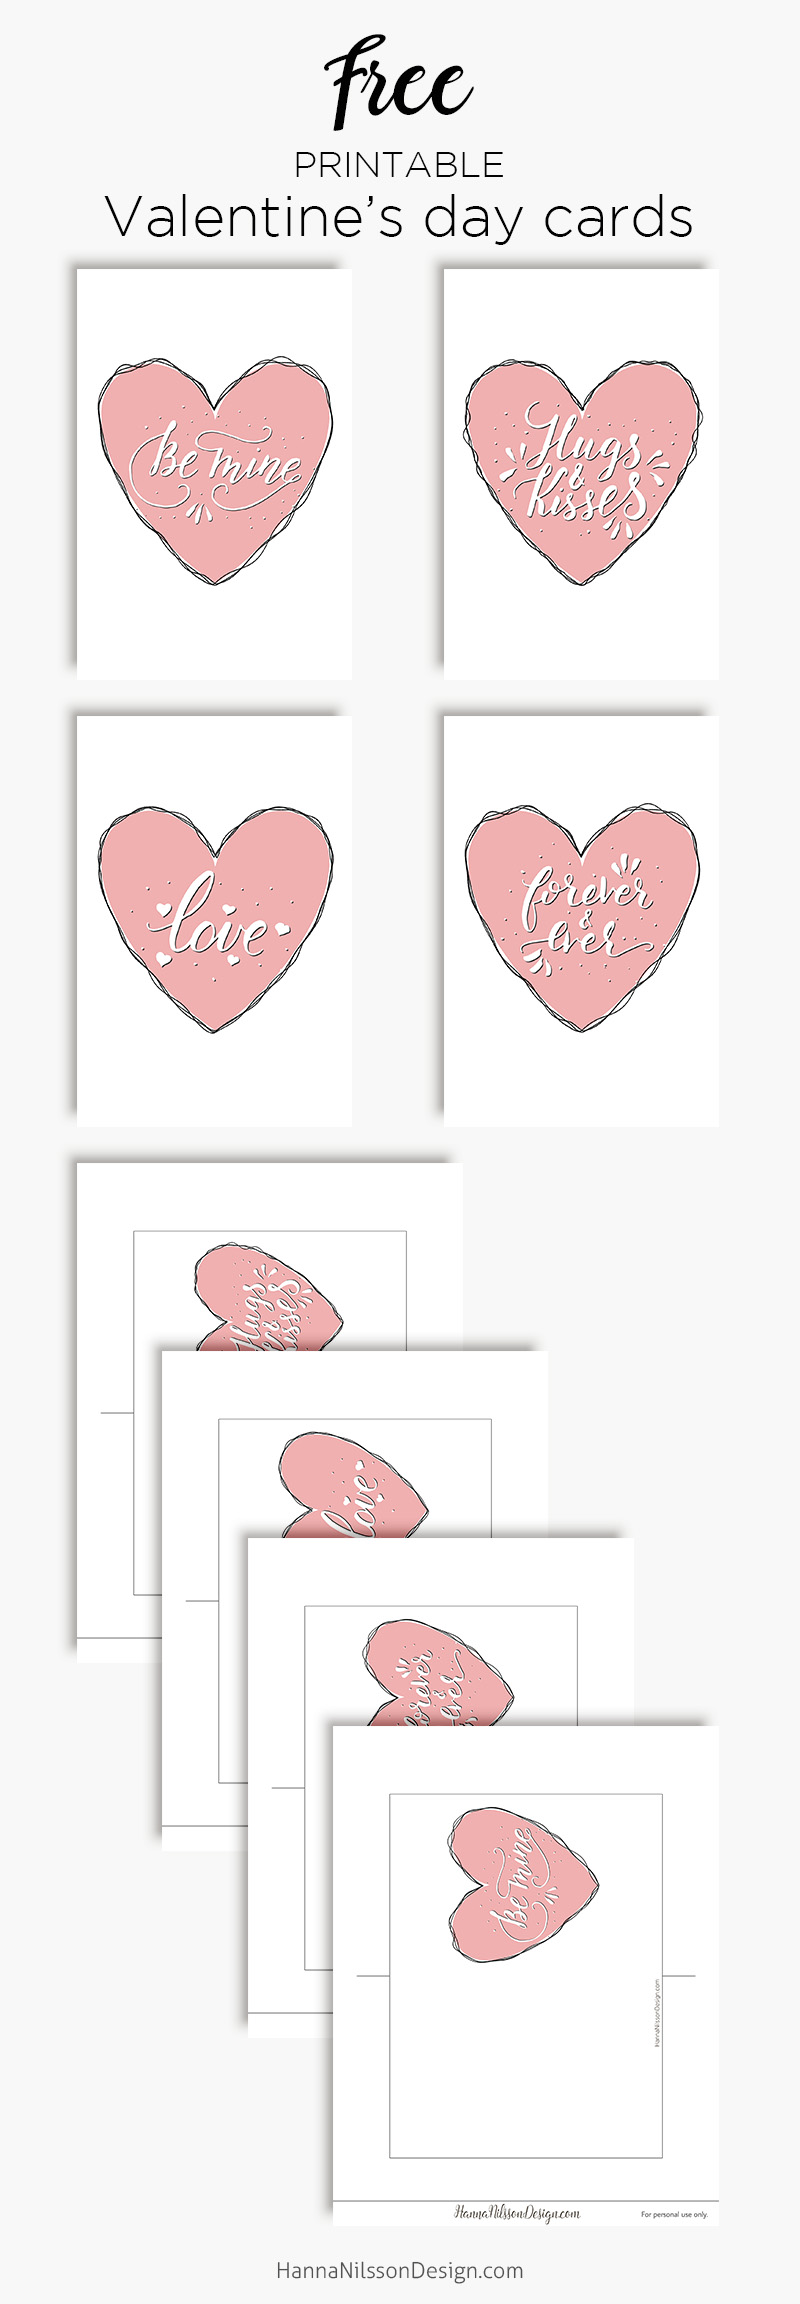 Valentine's day cards | Free printable cards | be mine, hugs and kisses, forever, love | #valentinesday #cards #freeprintable #printables #xoxo #heart